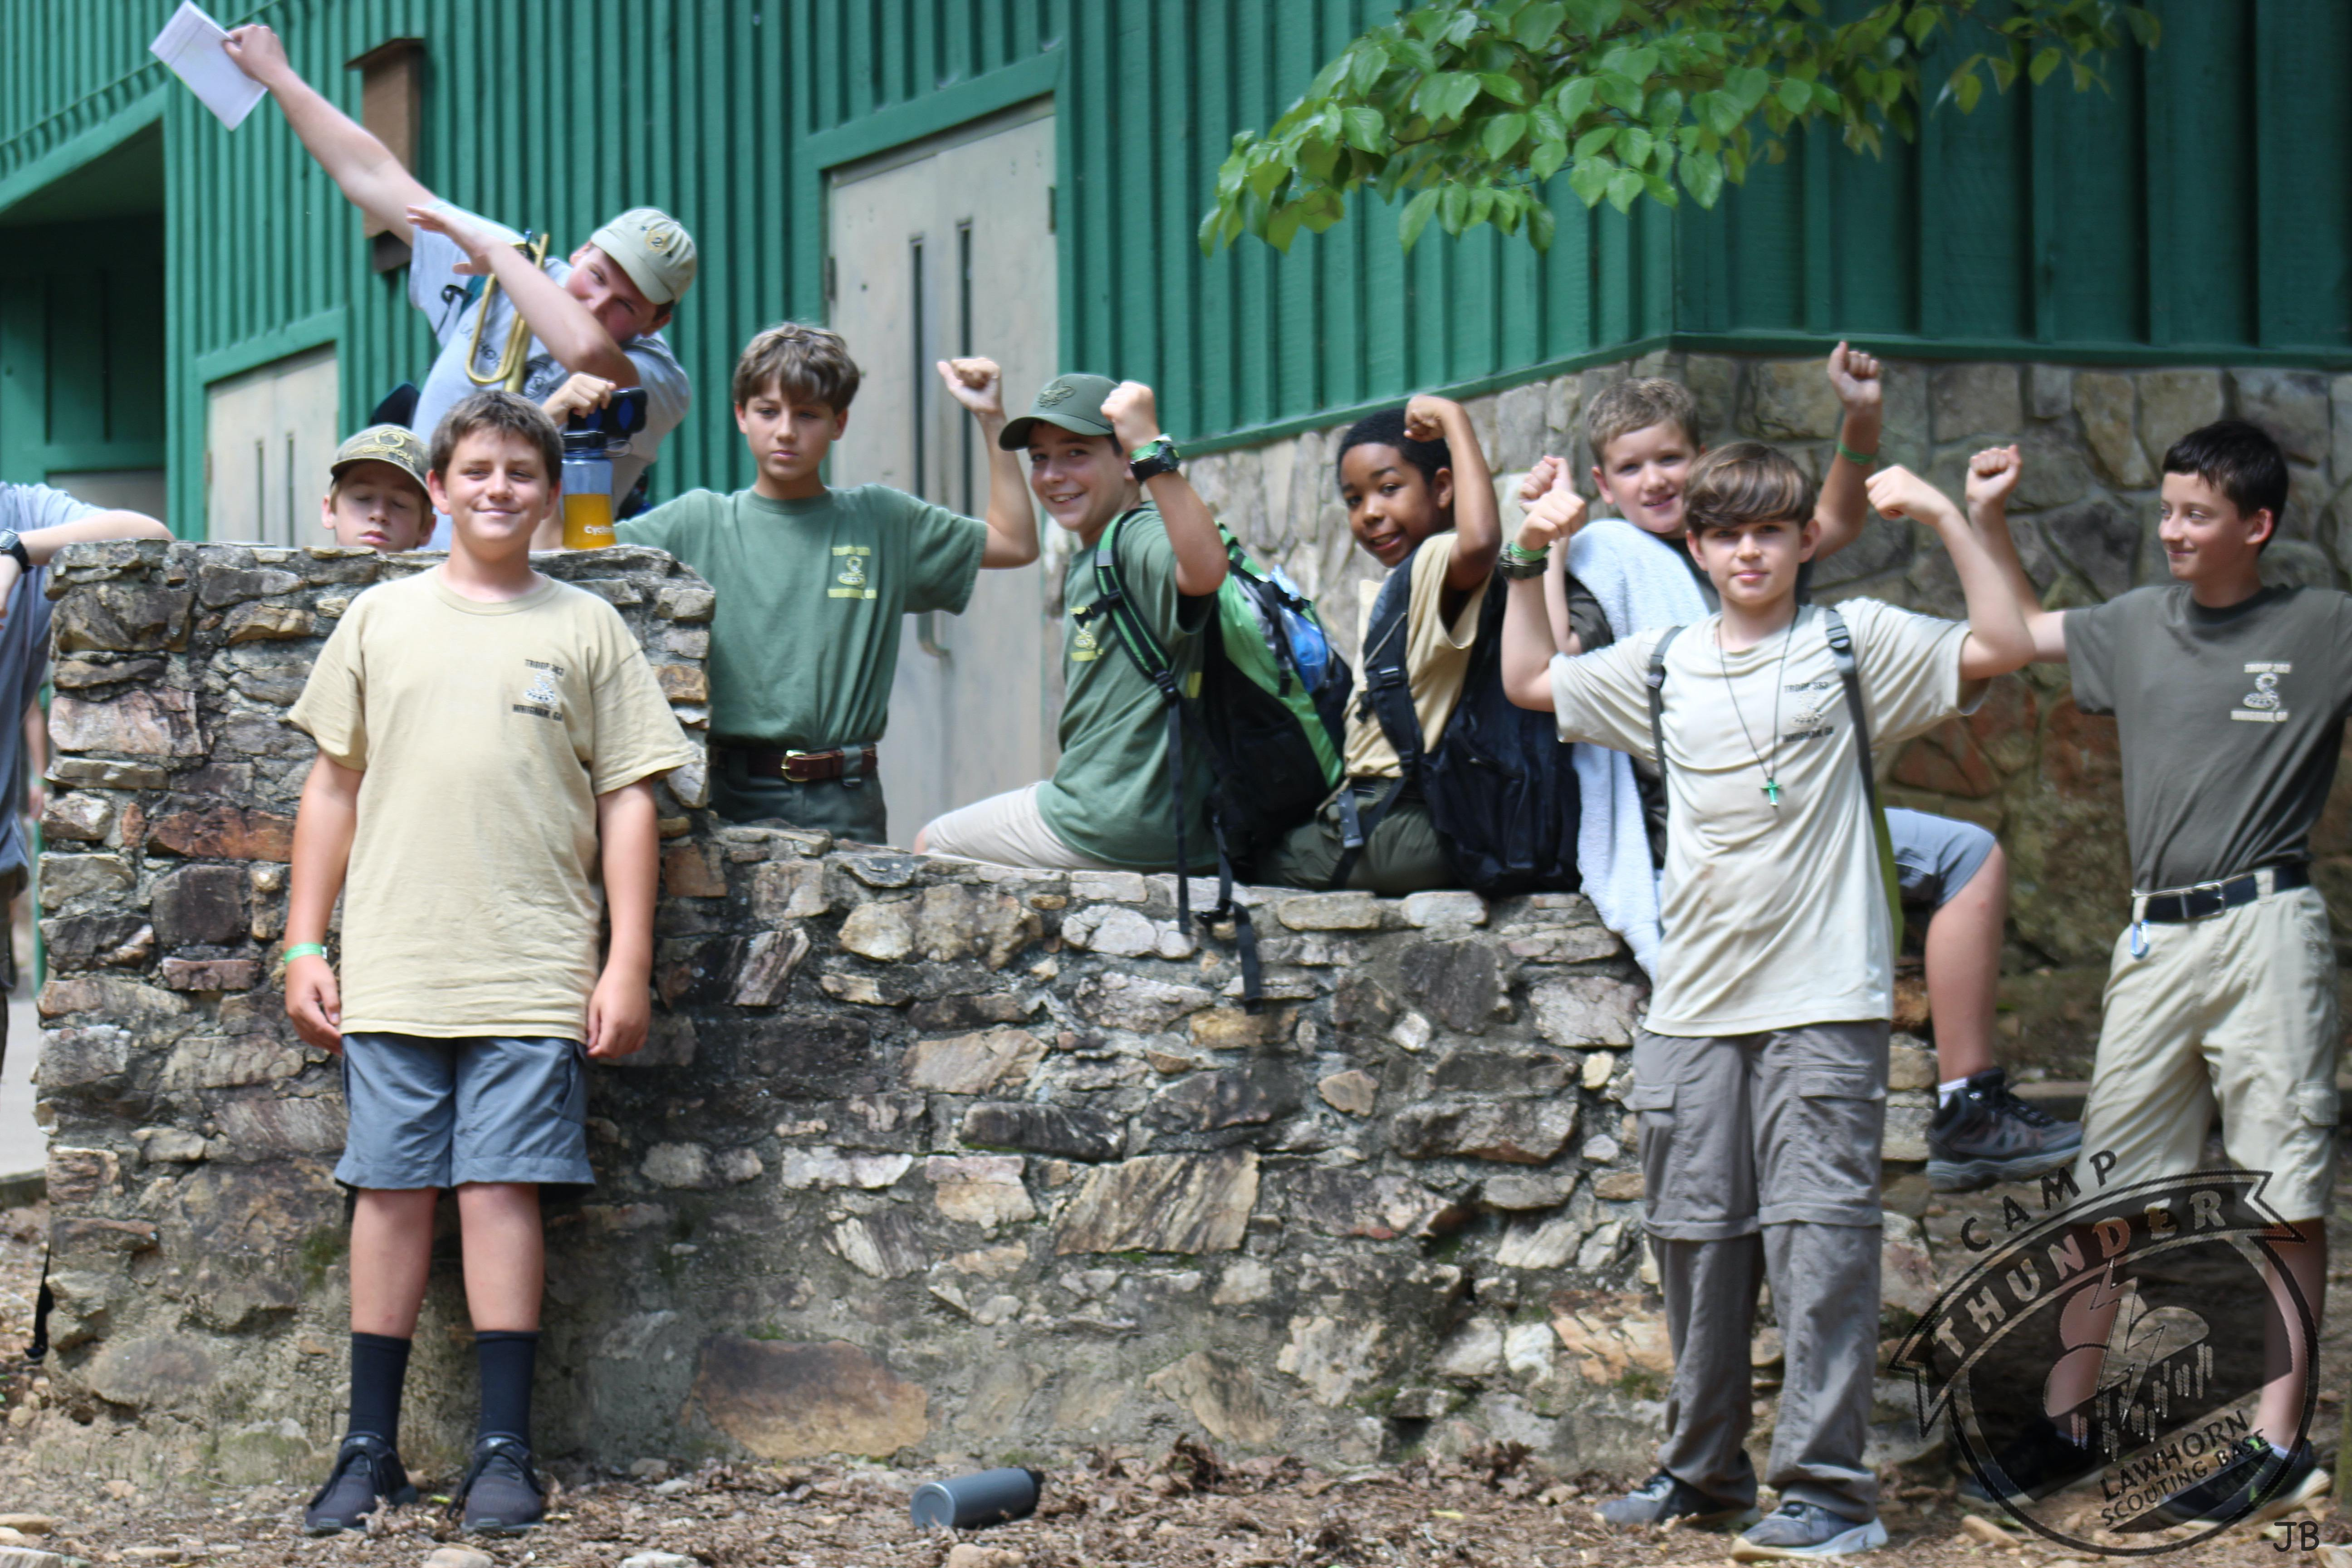 Nine Boy Scouts pose in front of a stone wall.